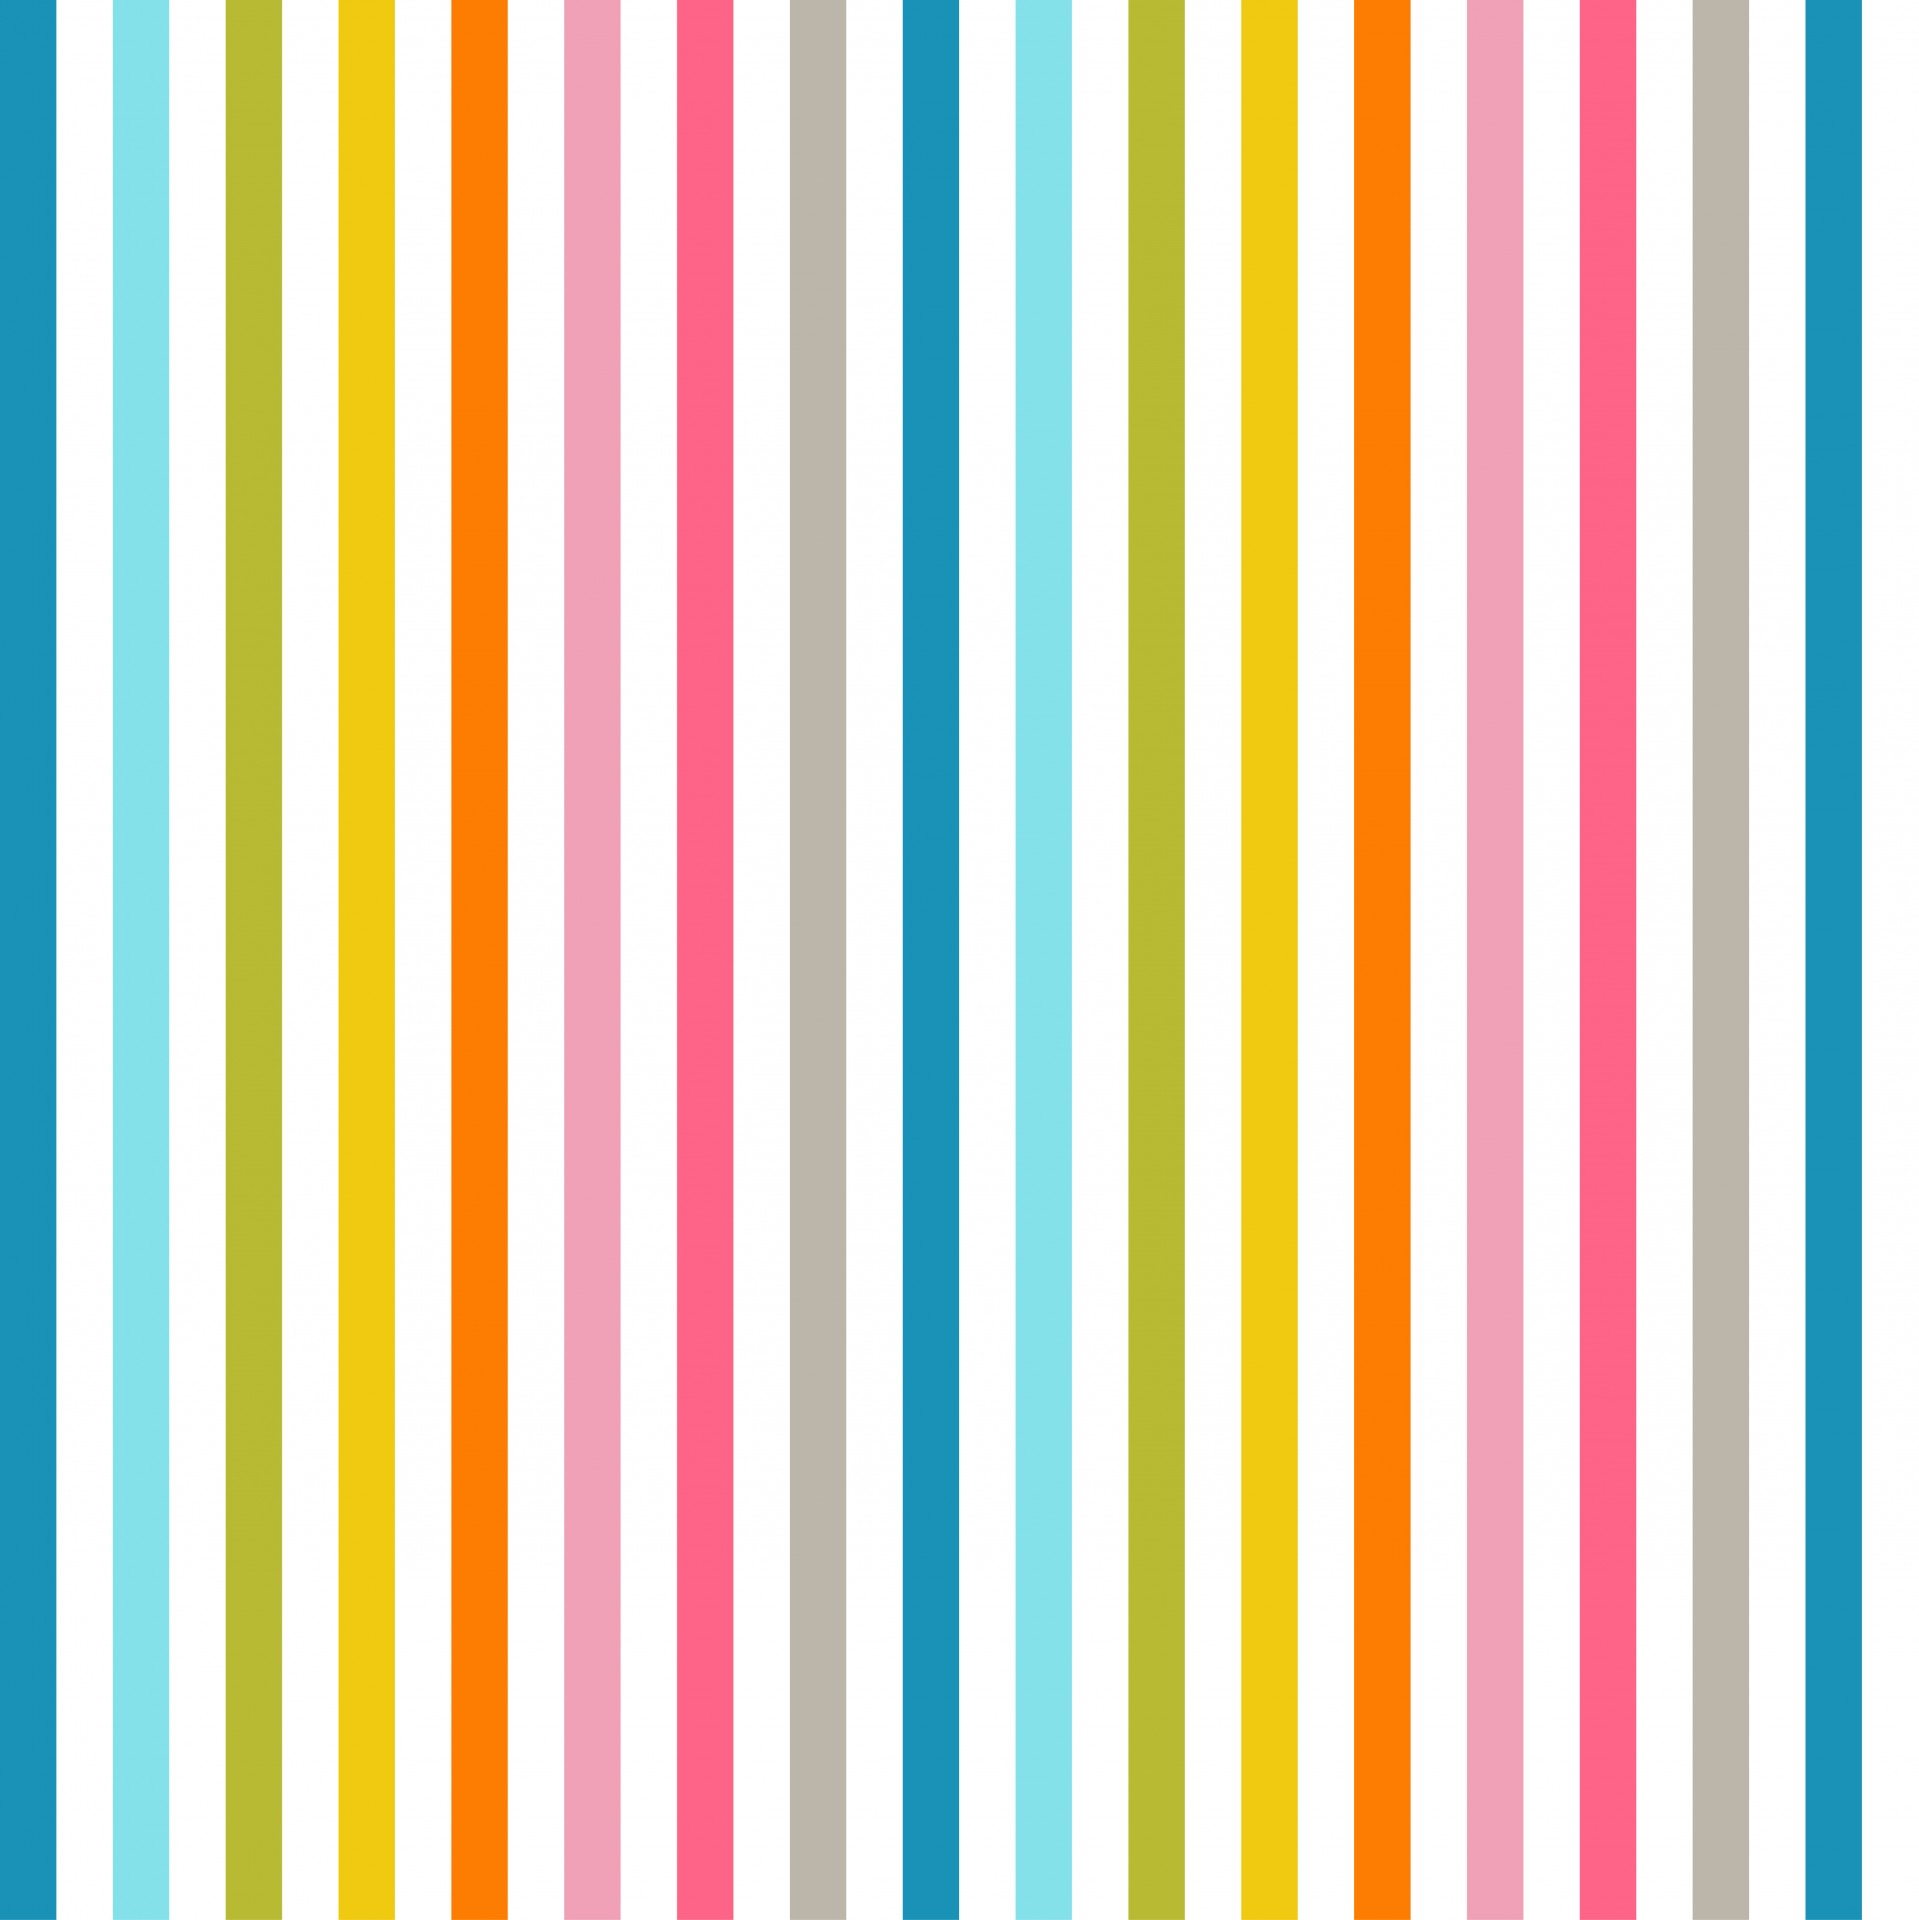 Stripes Background Colorful Stock Photo HD   Public Domain 1919x1920